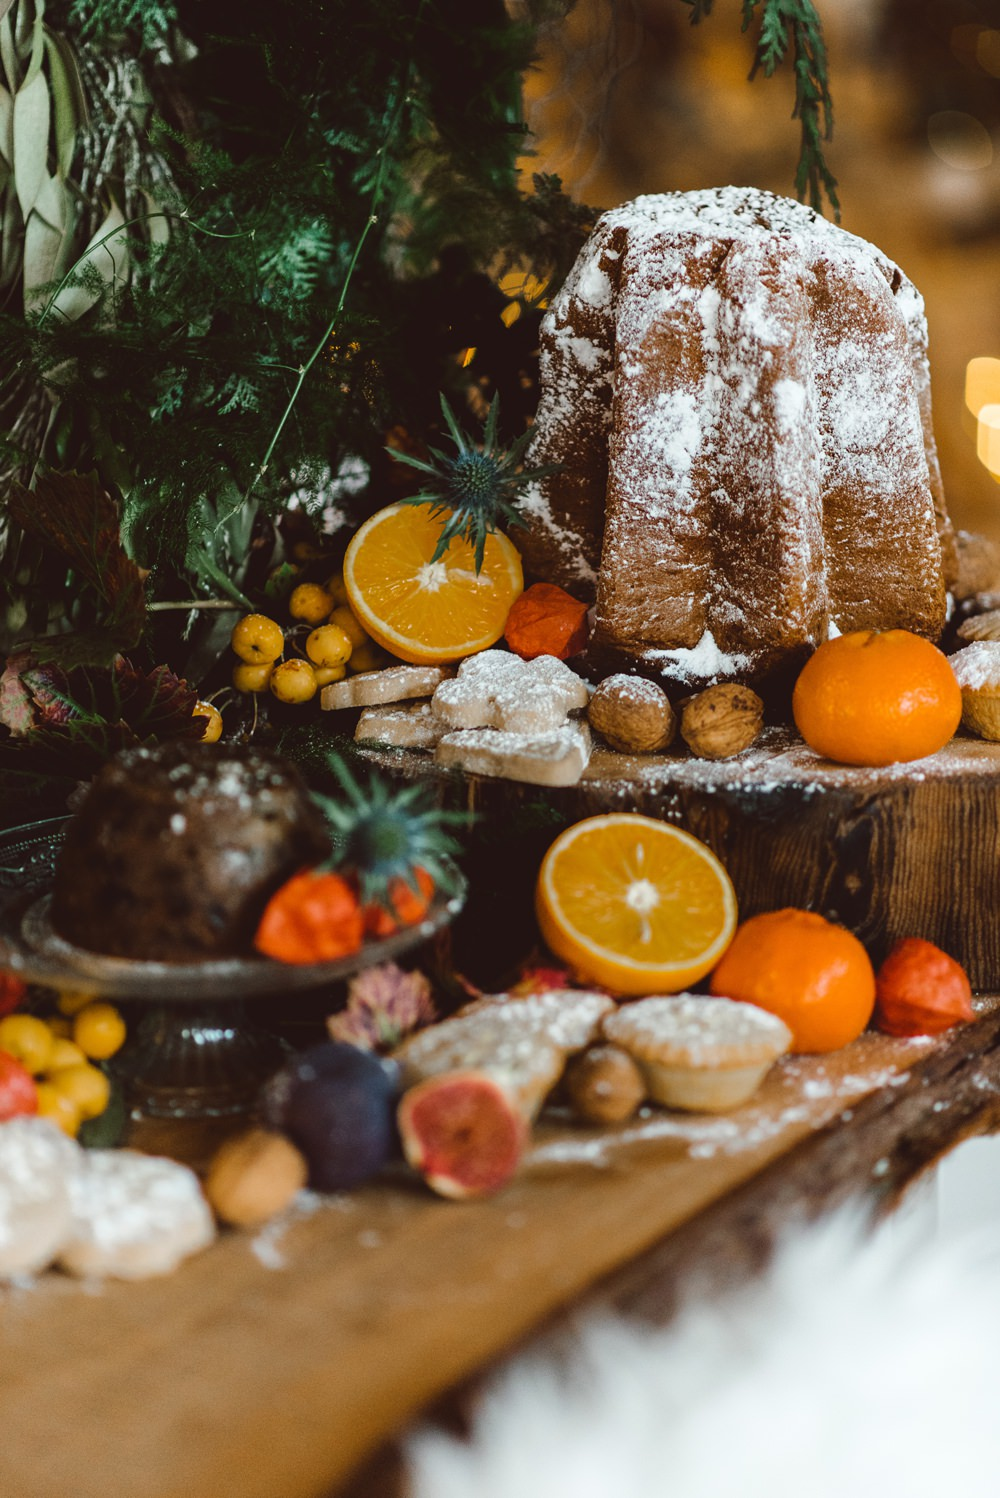 Pudding Fruit Dessert Table Rustic Christmas Wedding Ideas Dhw Photography